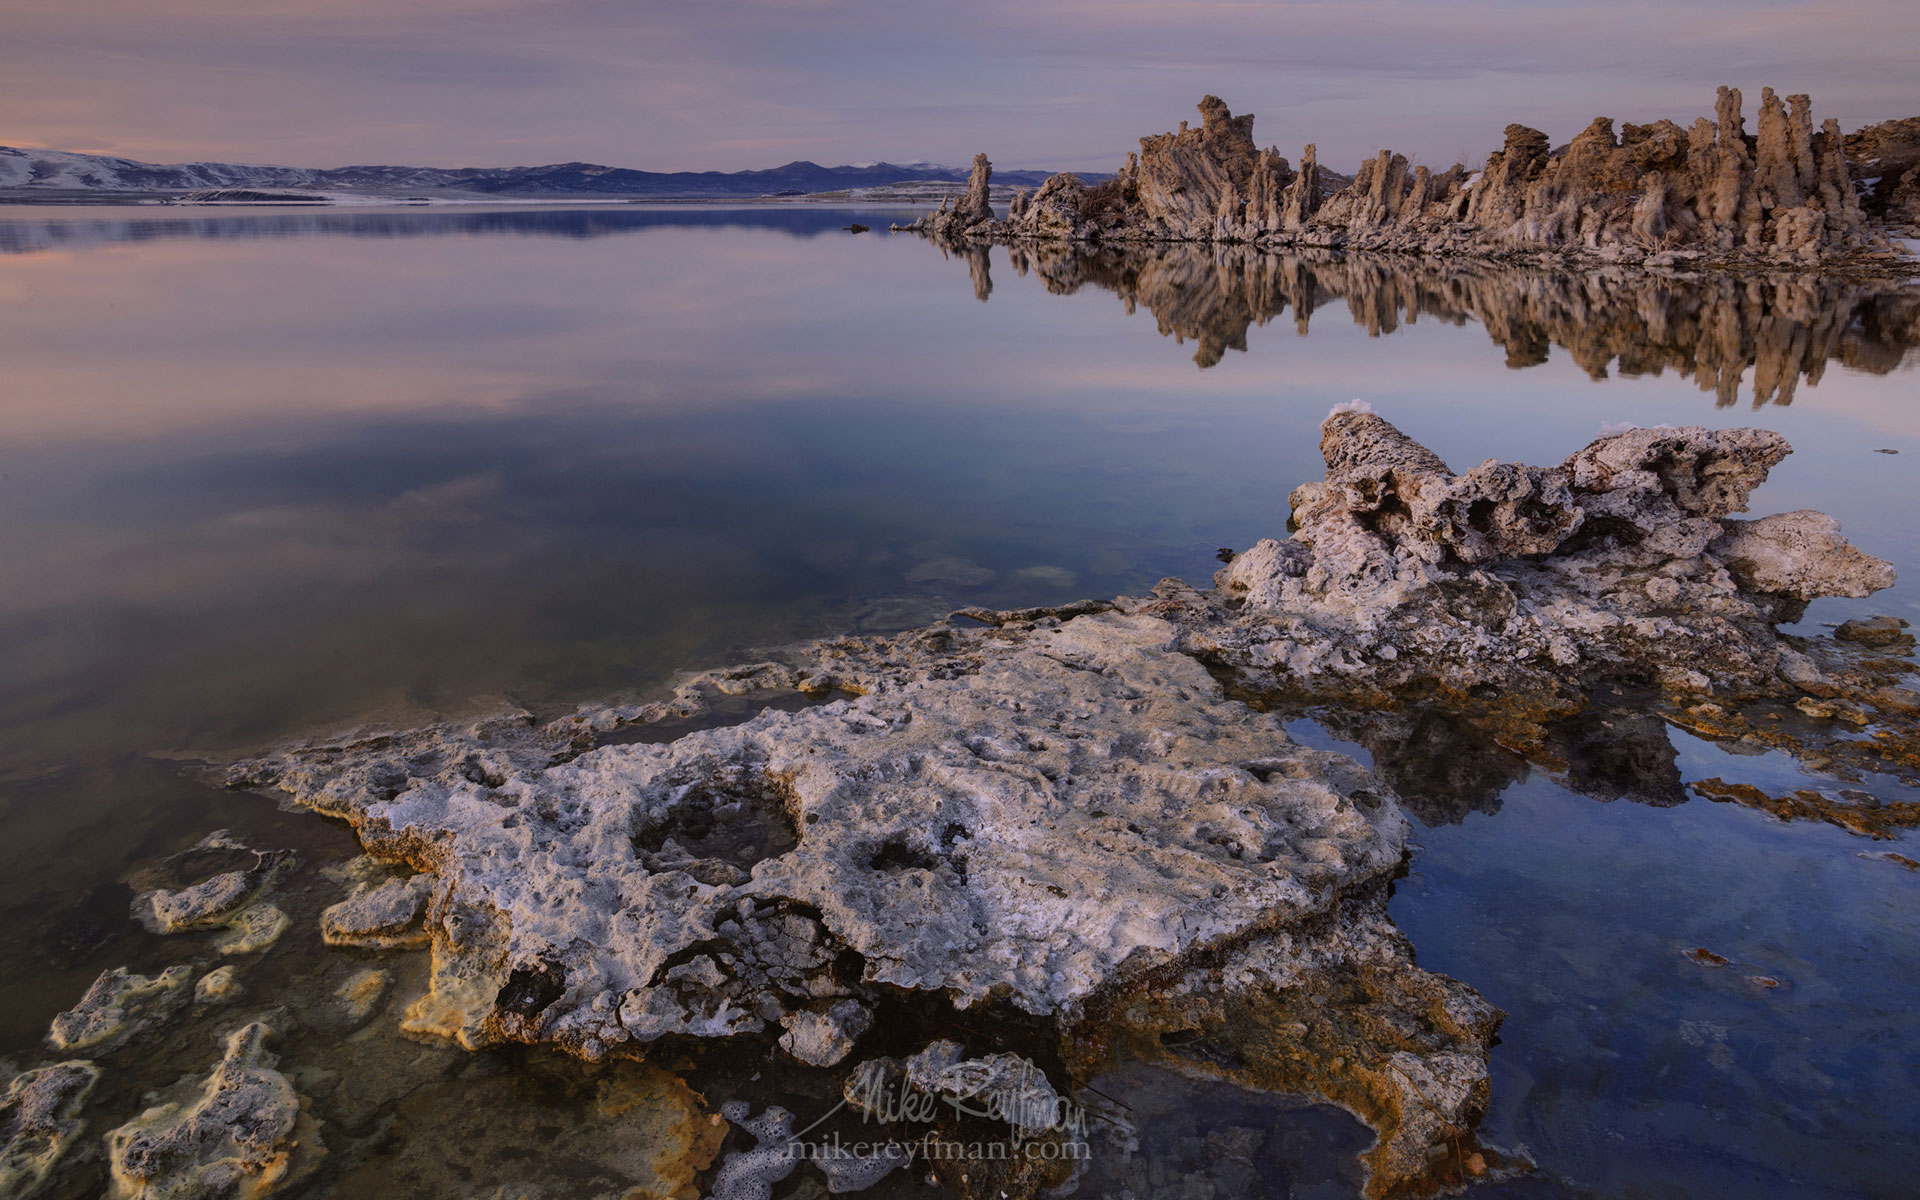 Mono Lake, Tufa State Natural Reserve, Eastern Sierra, California, USA ML1-MRN3X0667 - Mono Lake Tufa State Natural Reserve, Eastern Sierra, California - Mike Reyfman Photography